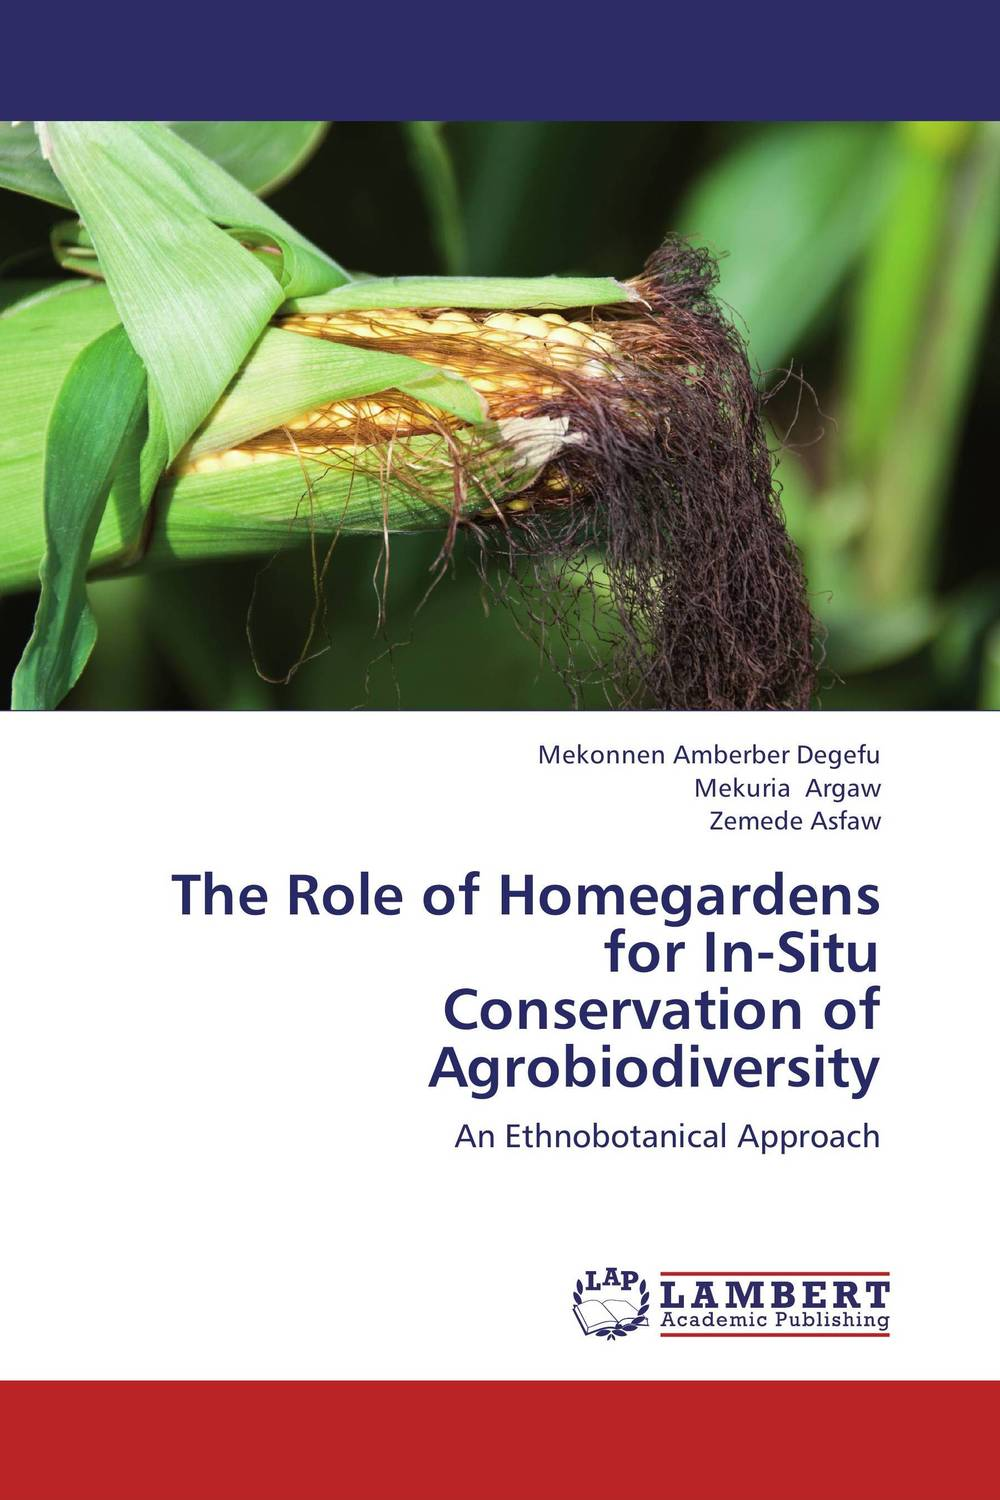 The Role of Homegardens for In-Situ  Conservation of Agrobiodiversity the role of heritage conservation districts